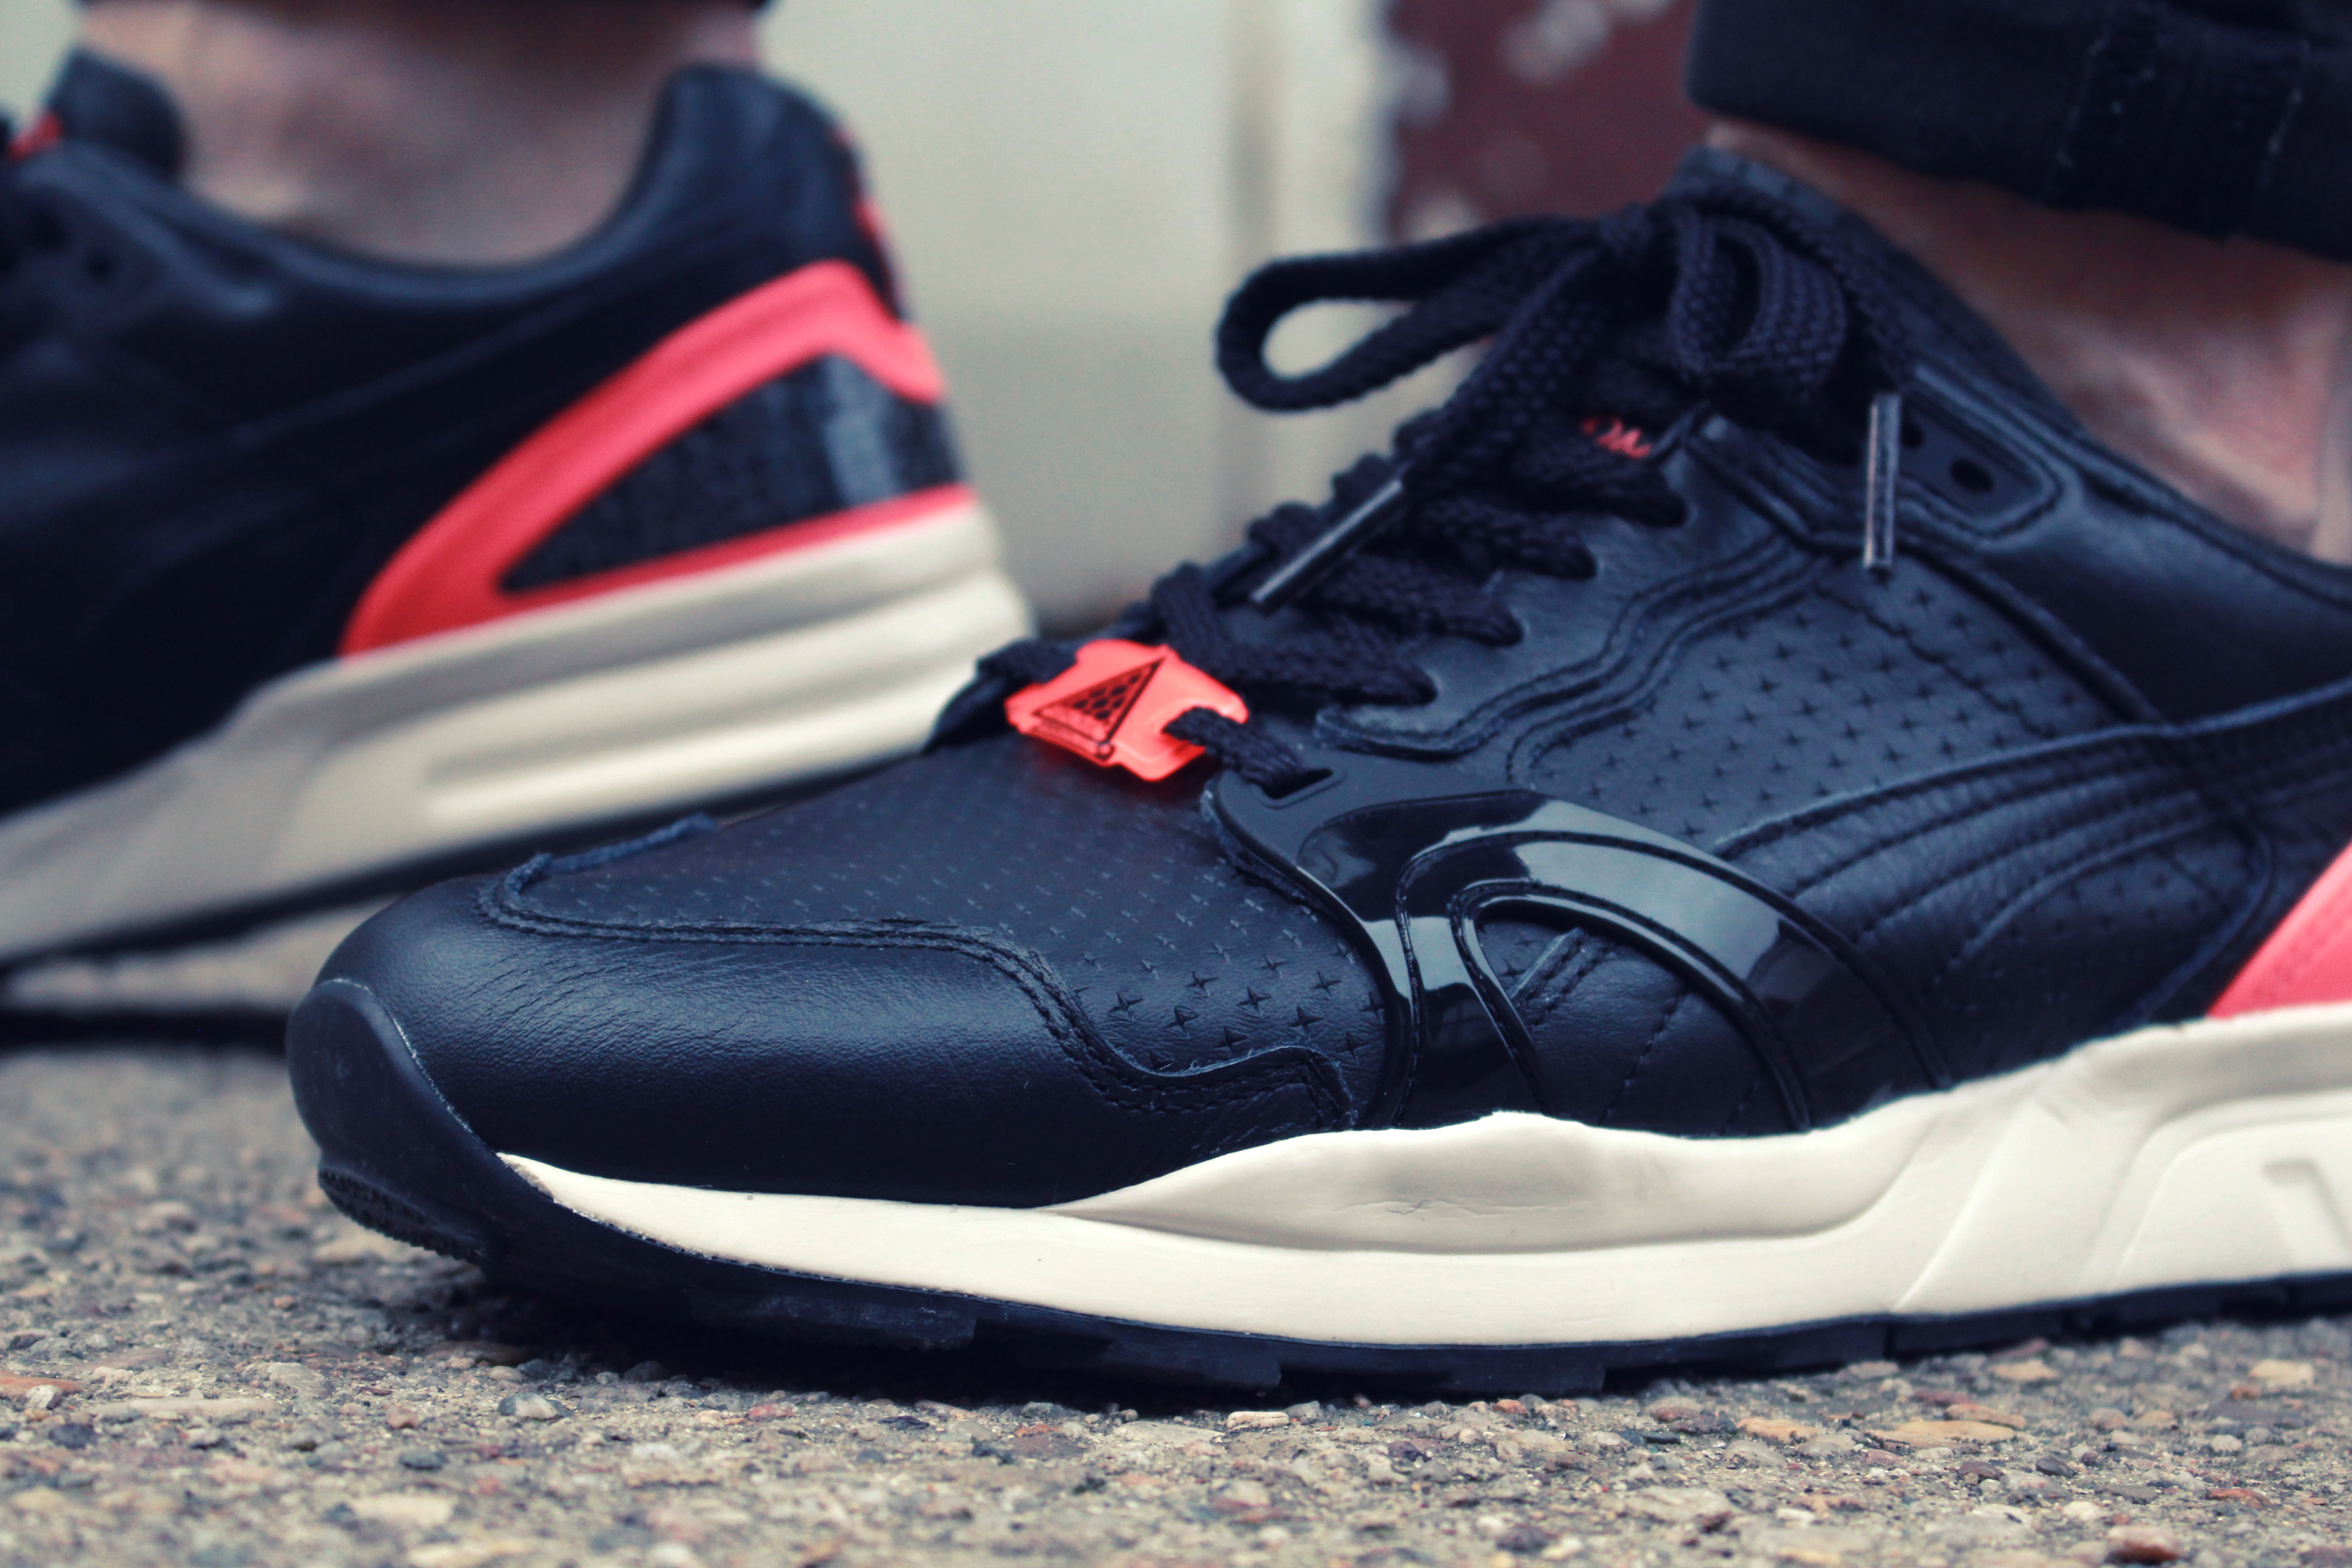 puma-trinomic-xt2-plus-black-crackle-pack-04